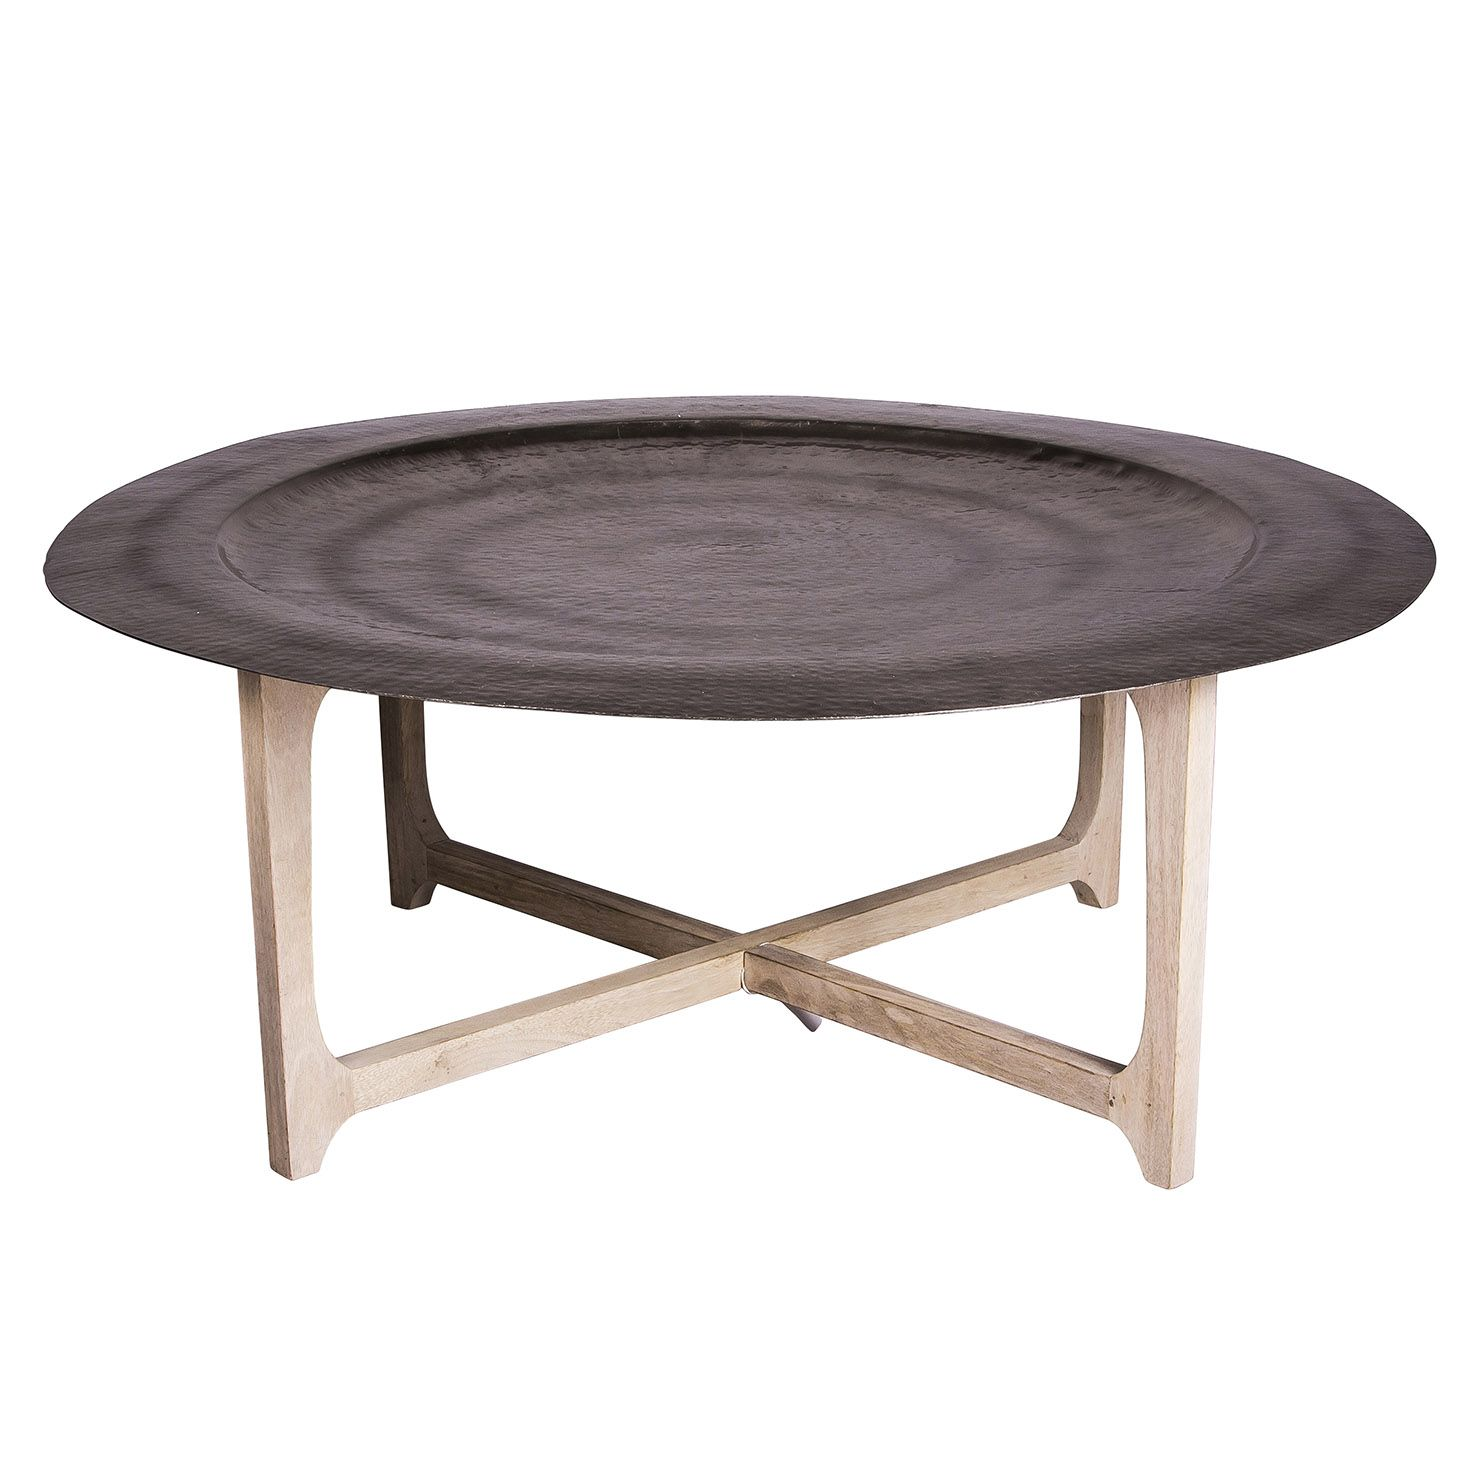 Laide 91cm Mango Wood Tray Table Coffee Table Round Coffee Table Coffee Table Tray [ 1480 x 1480 Pixel ]